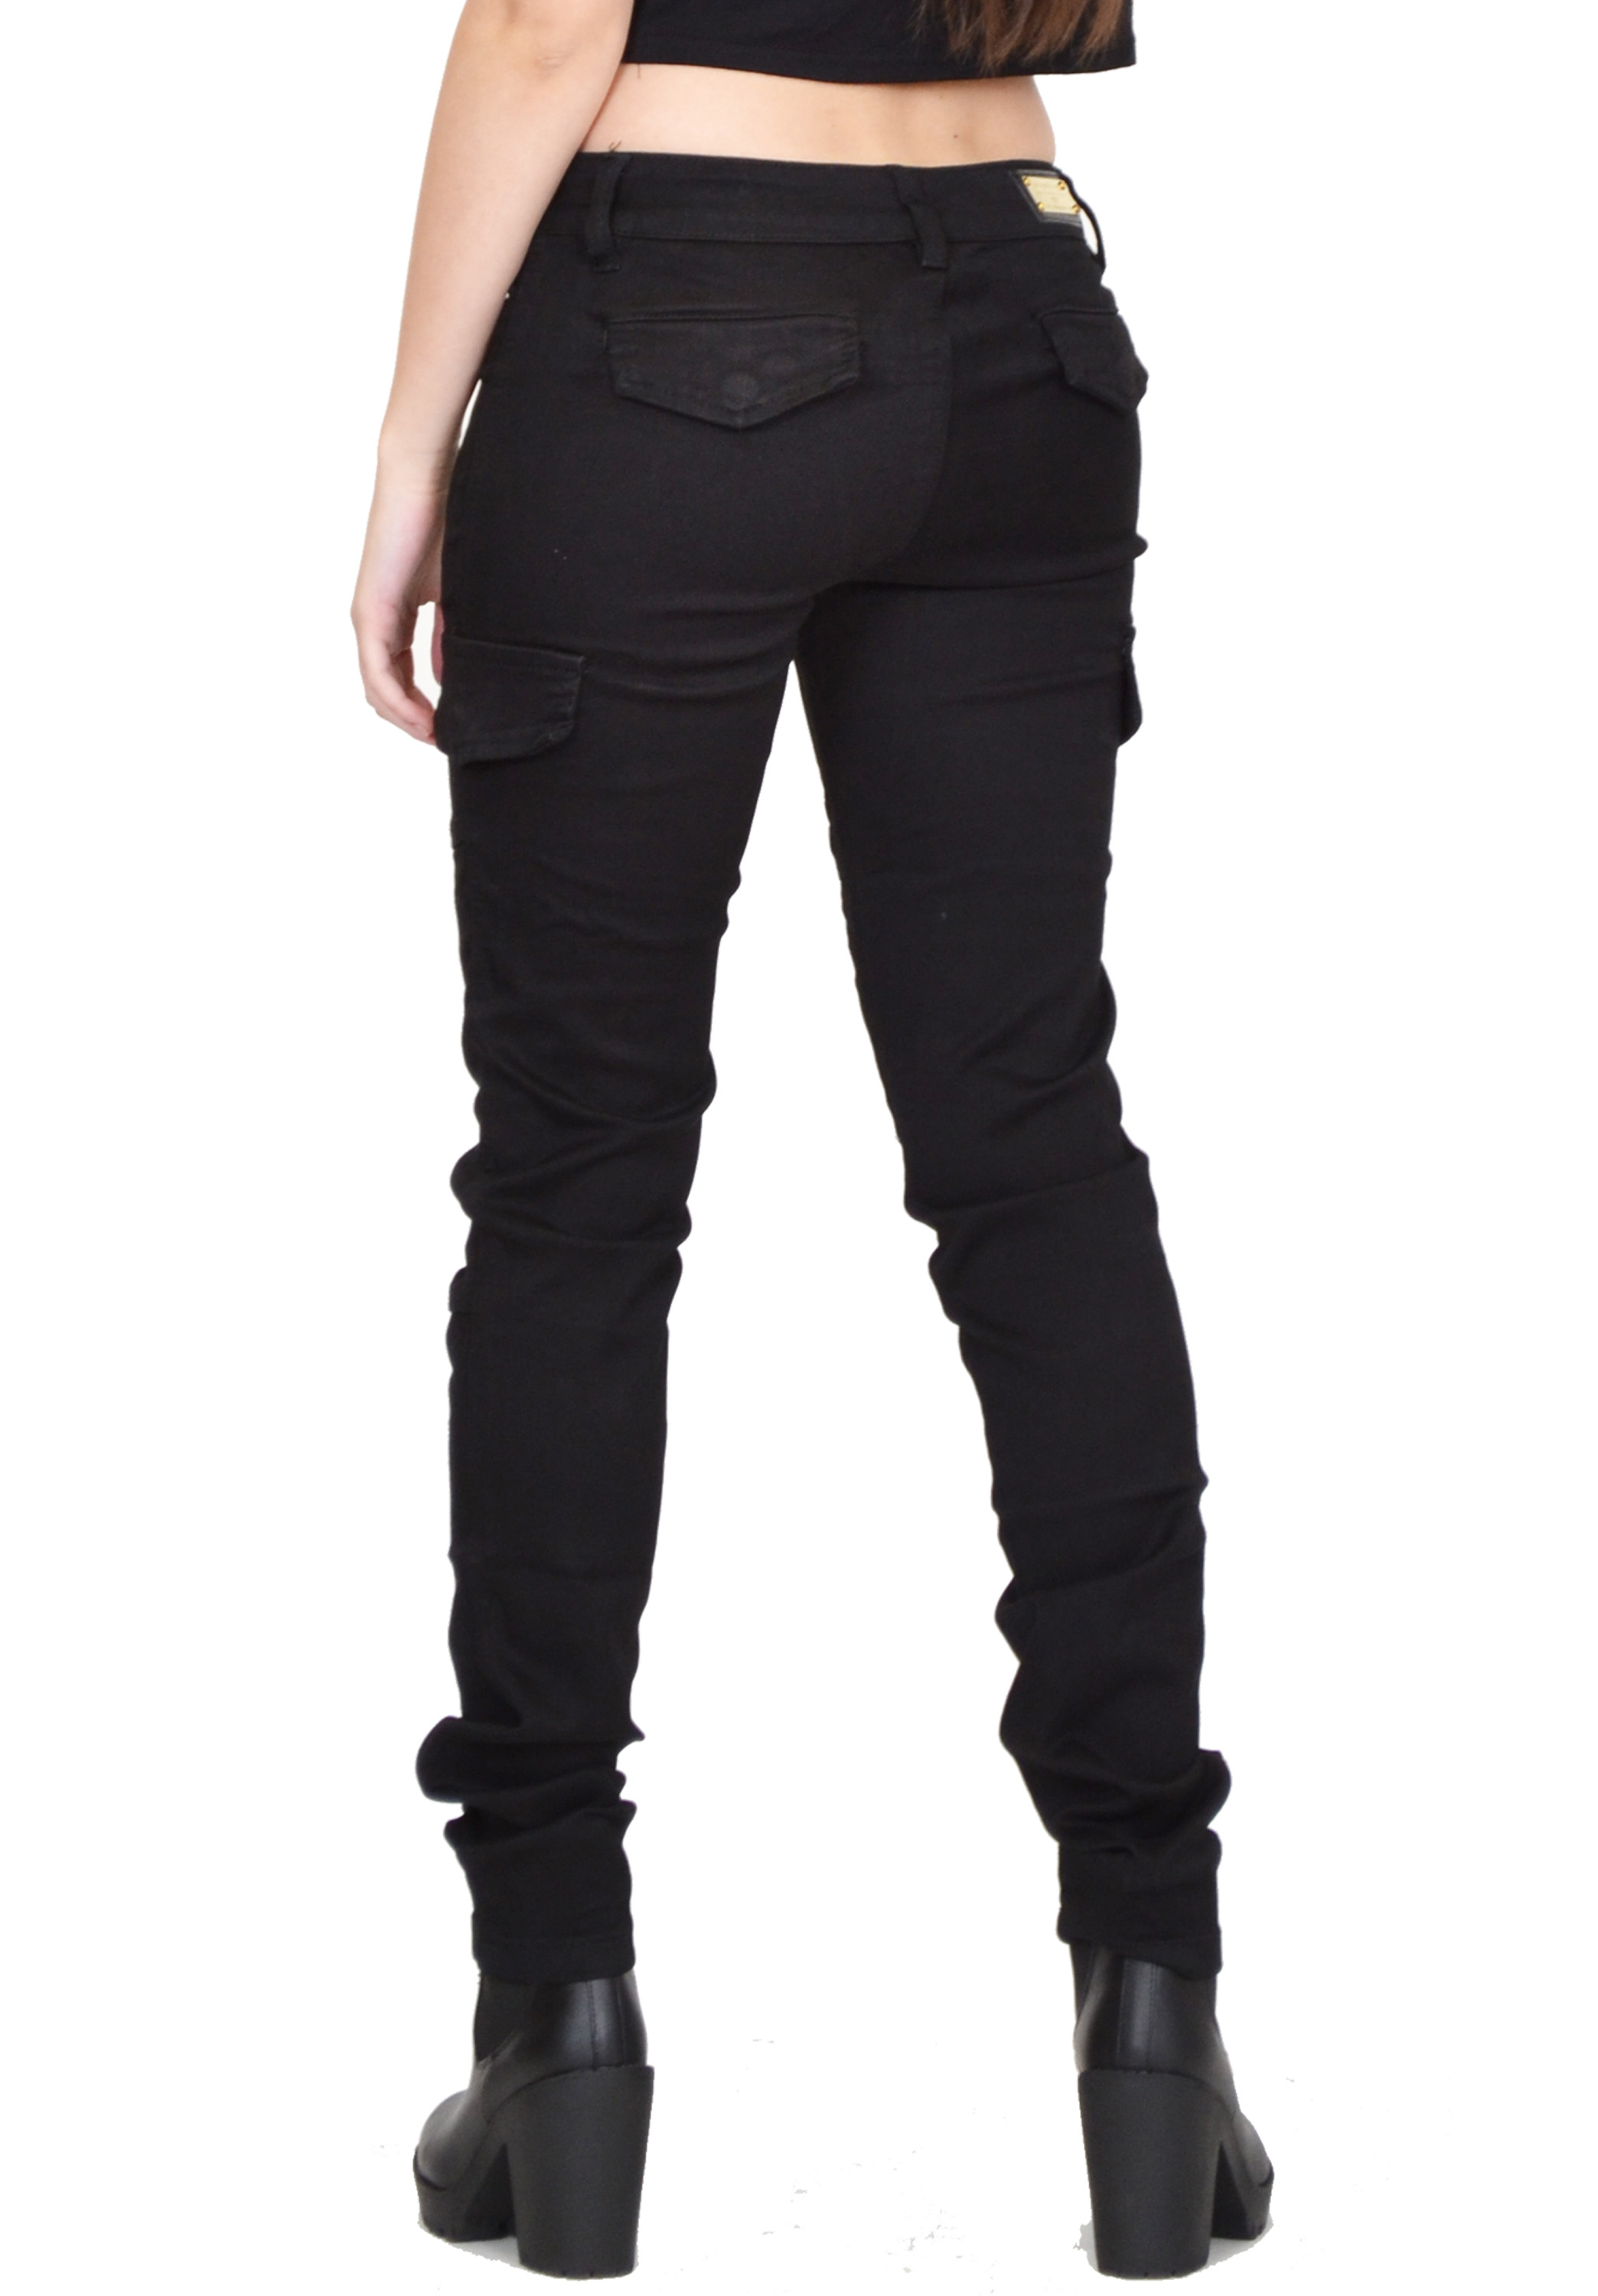 New Ladies Womens Black Slim Fitted Stretch Combat Pants Skinny ...